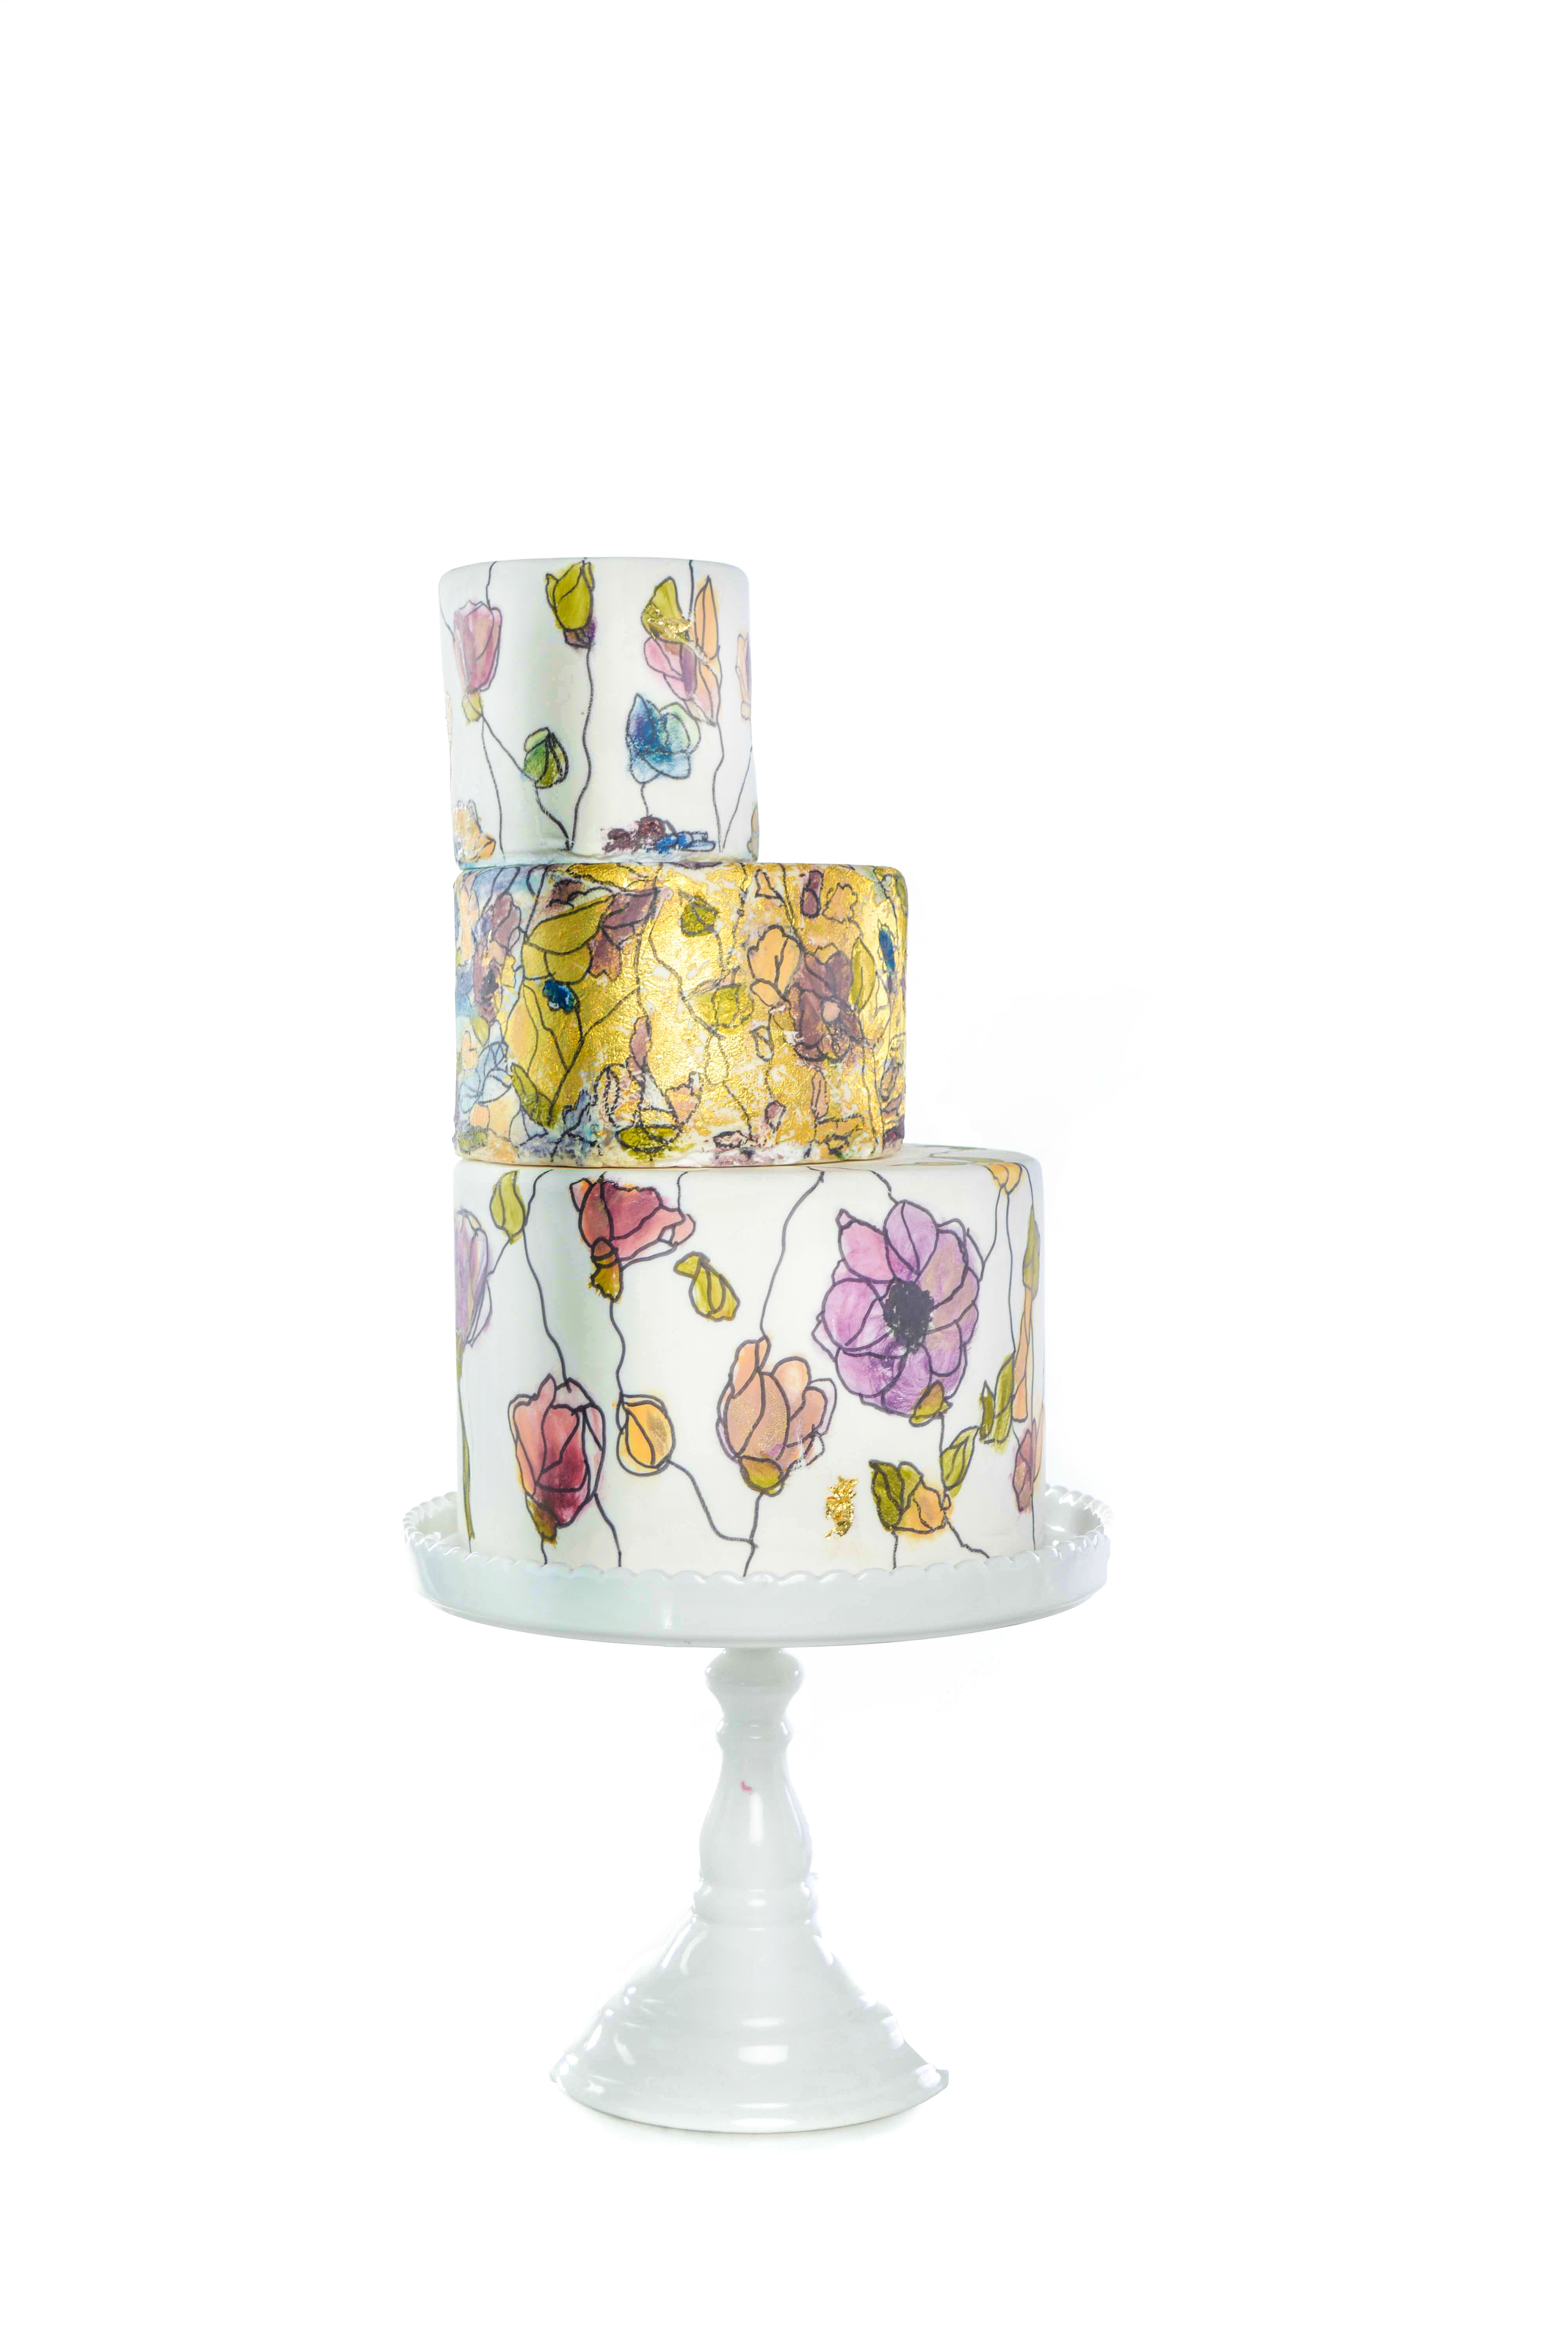 Handpainted flower wedding cake with gold sparkle